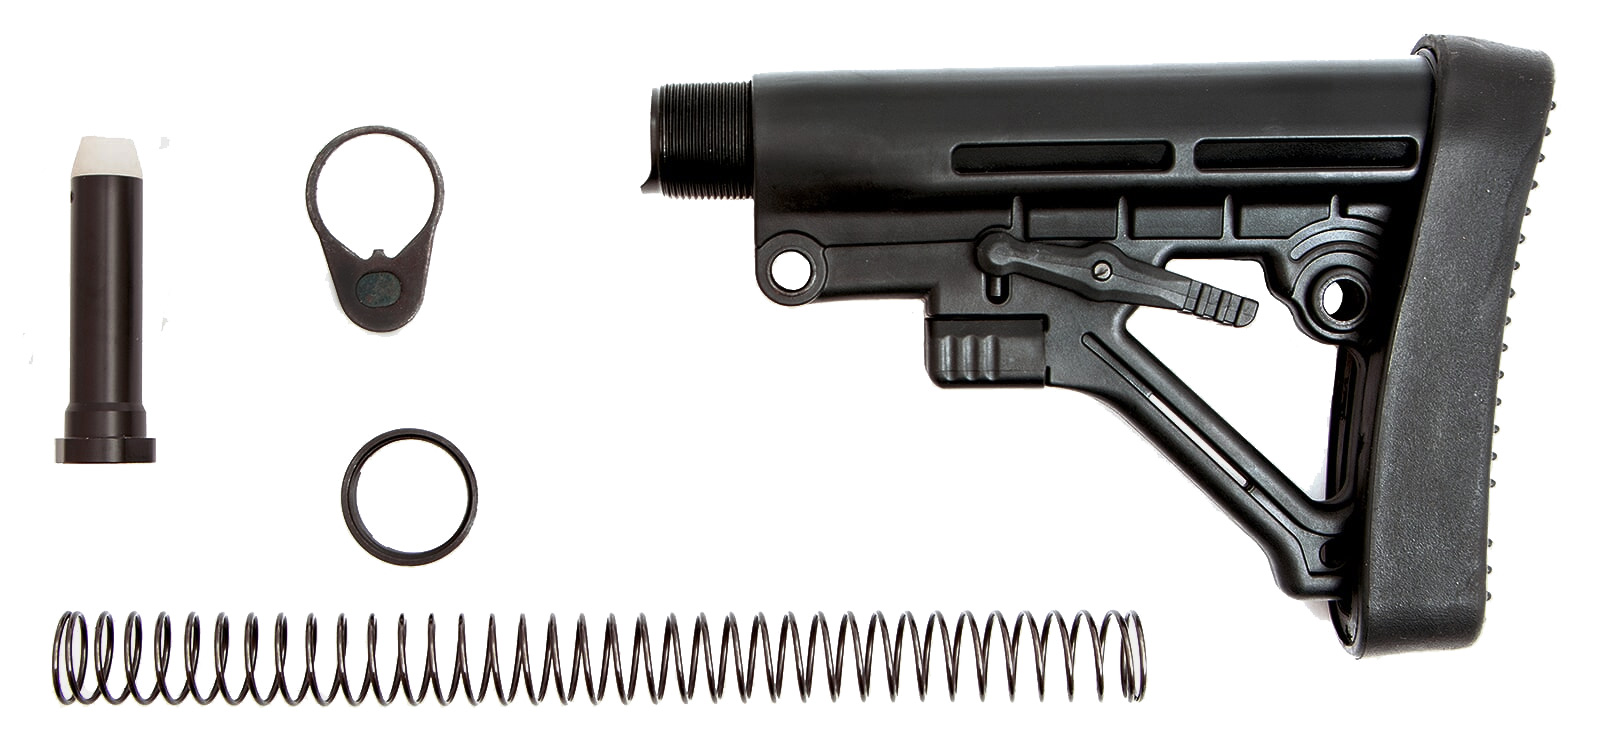 ar-15-buttstock-kit-buttstock-buffer-tube-carbine-buffer-recoil-spring-receiver-end-plate-extension-castle-nut-1